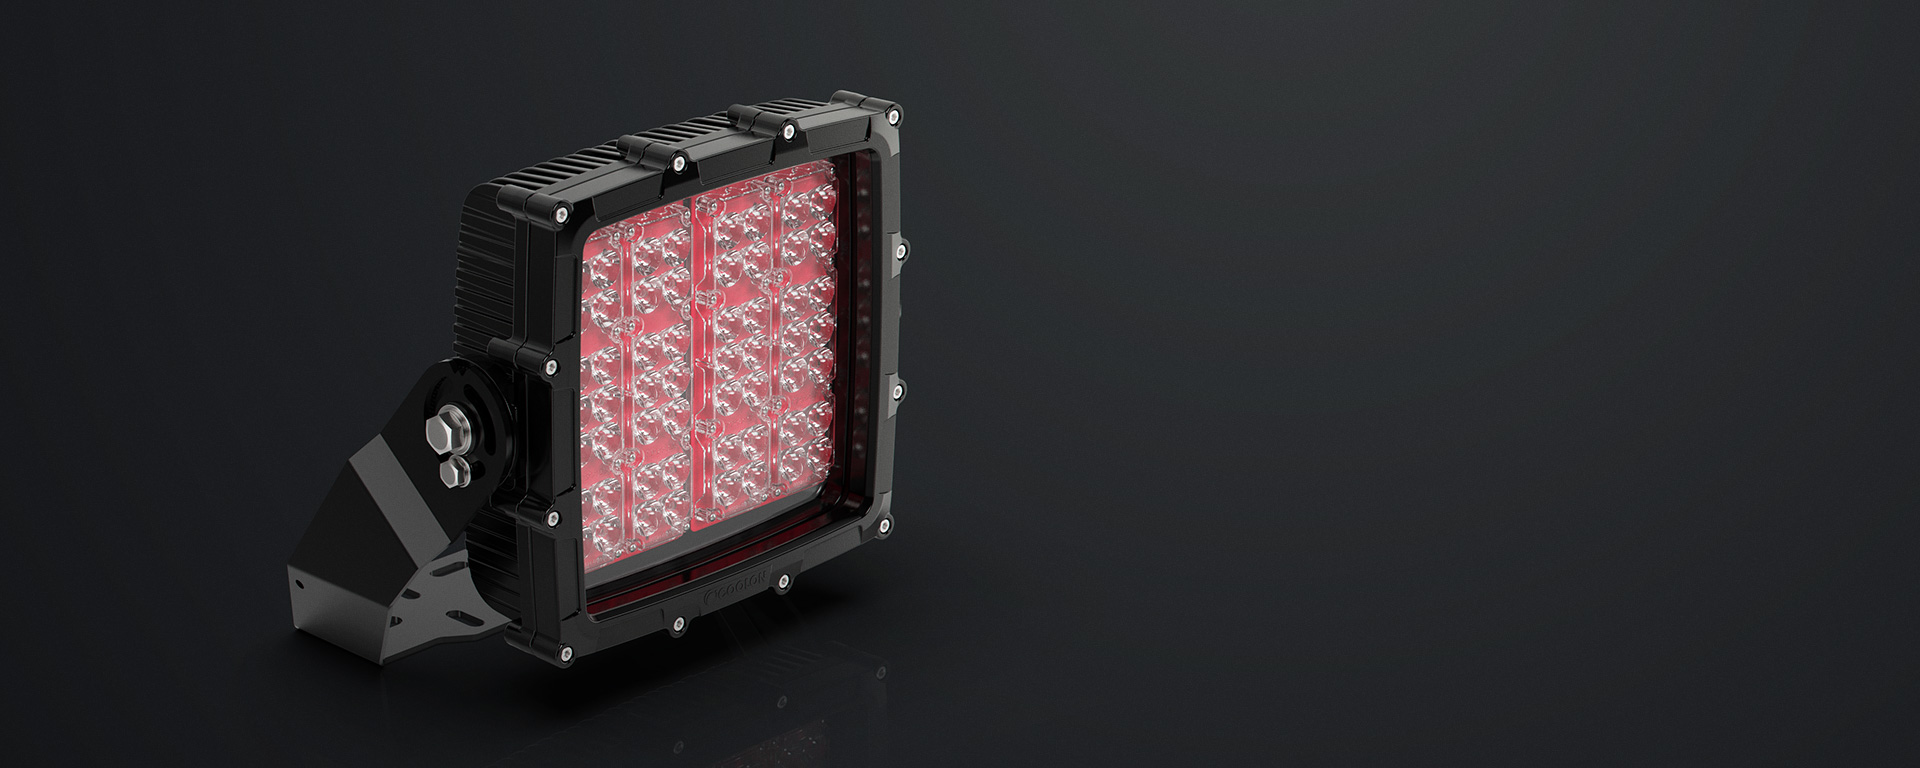 Unlike conventional LED floodlights, the HT66 was designed to withstand constant abuse.